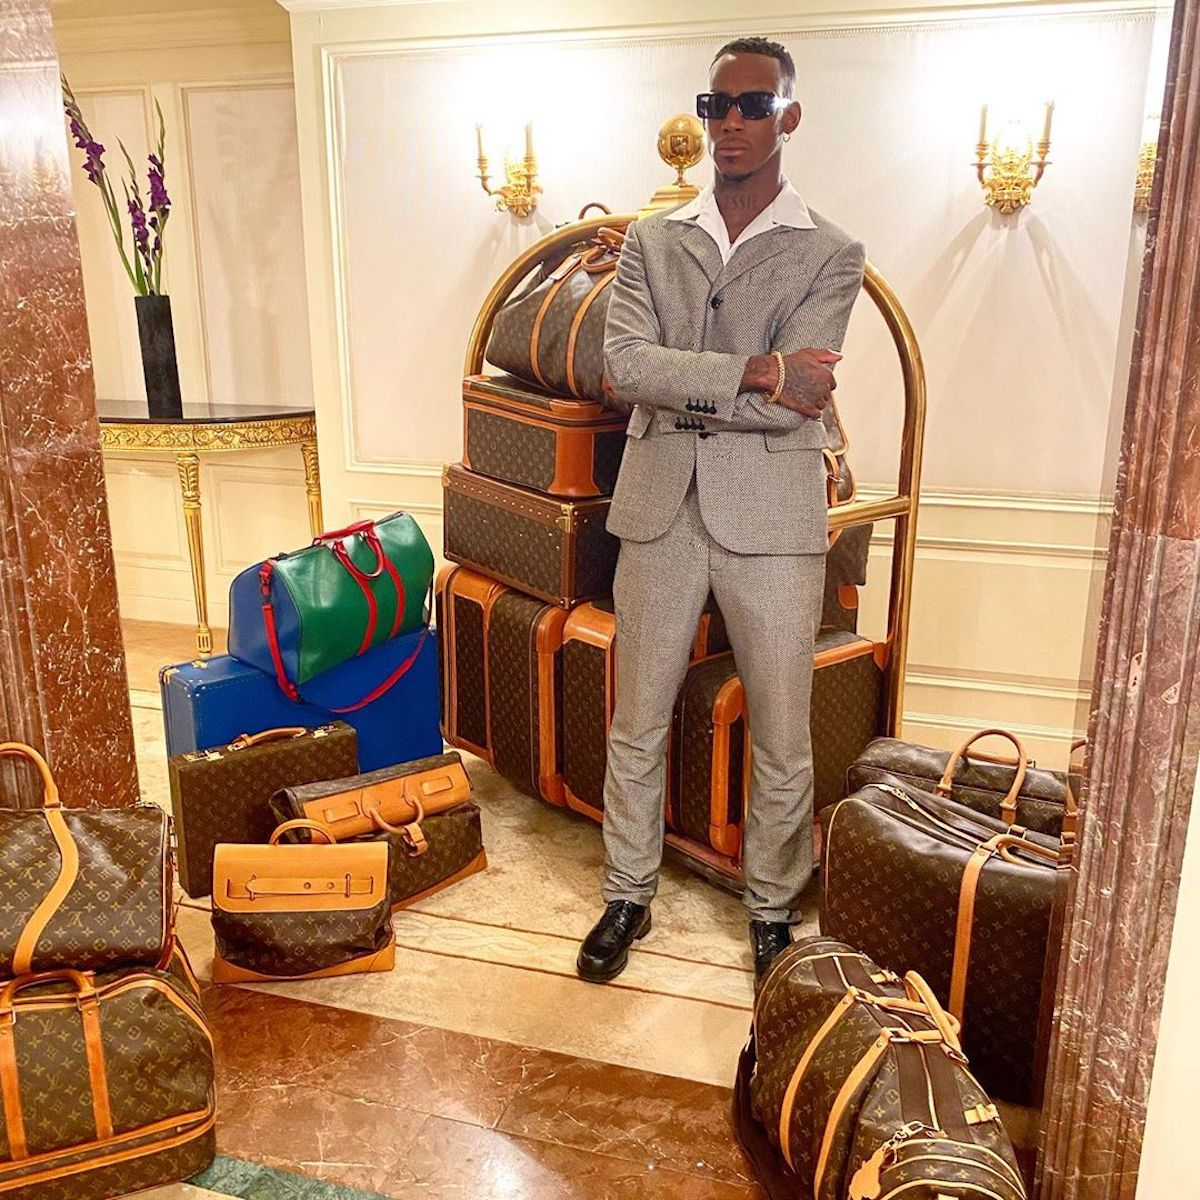 SPOTTED: Octavian Shares Louis Vuitton Luggage Collection